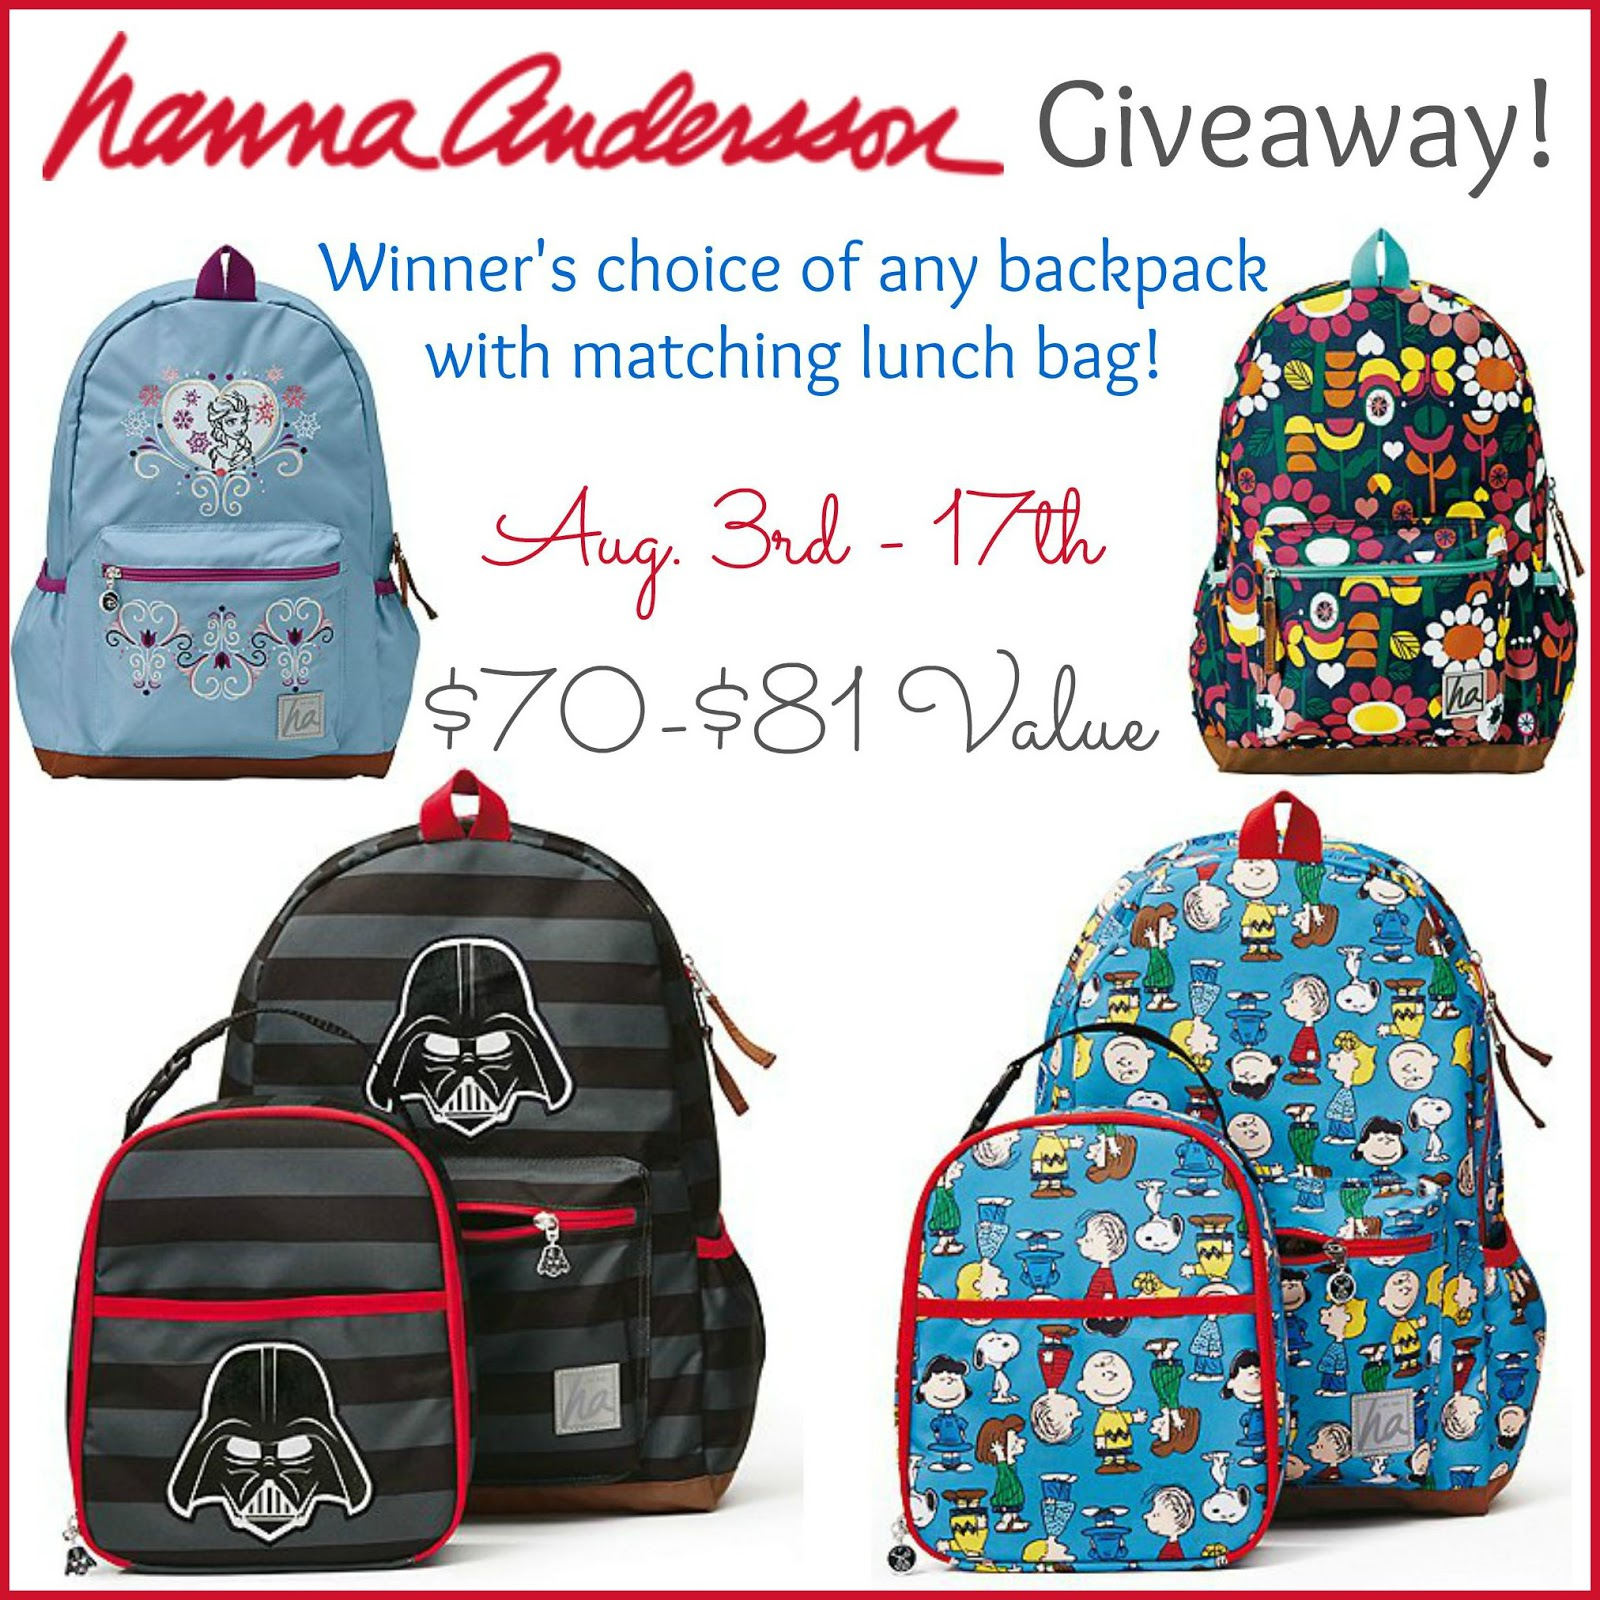 hanna andersson backpack and lunch bag giveaway  u2013 ends 8  17